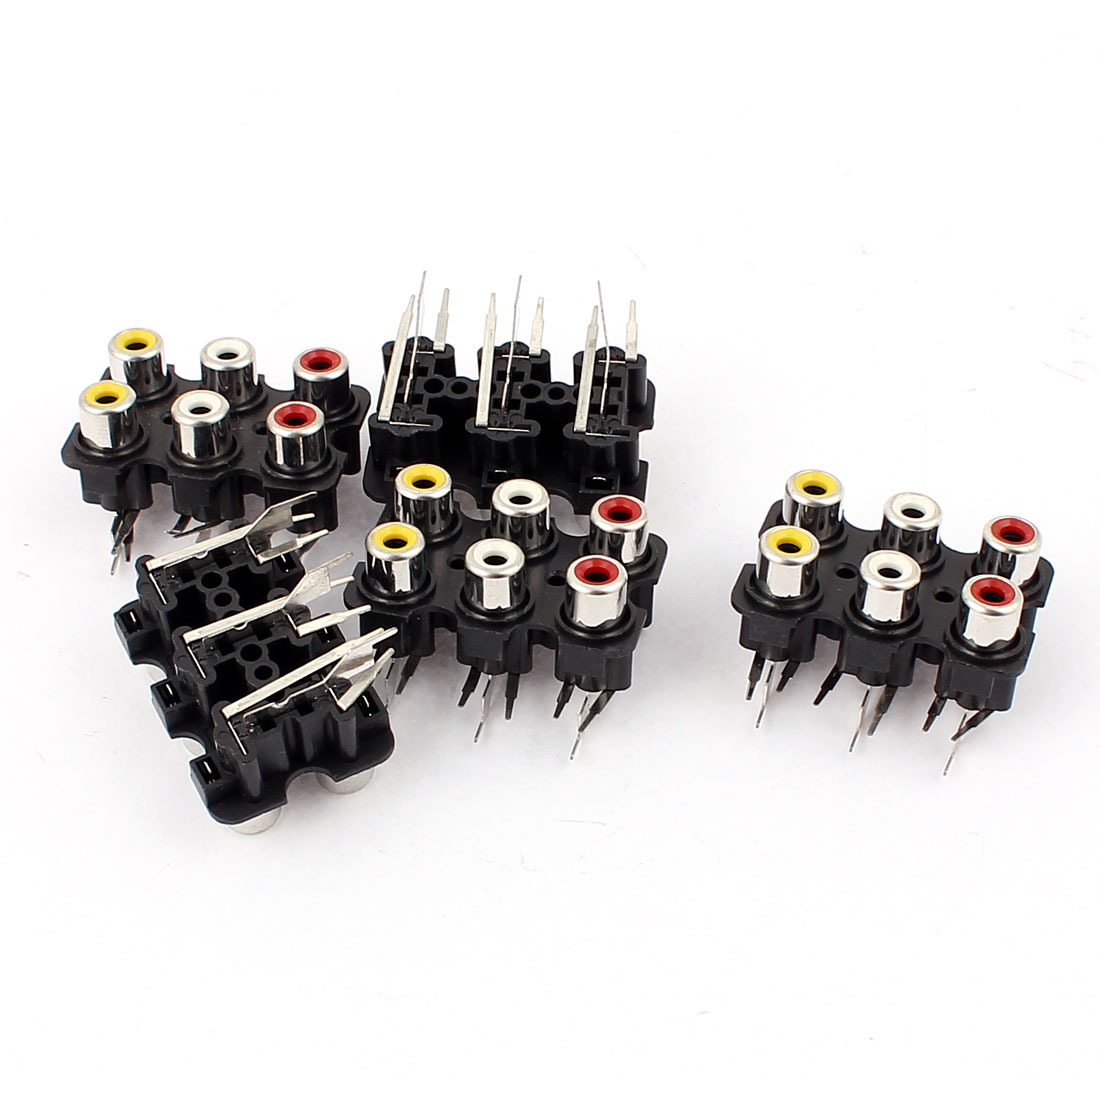 PCB Mount Stereo Audio Video Jack AV Socket 6 RCA Position Female Connector 5Pcs